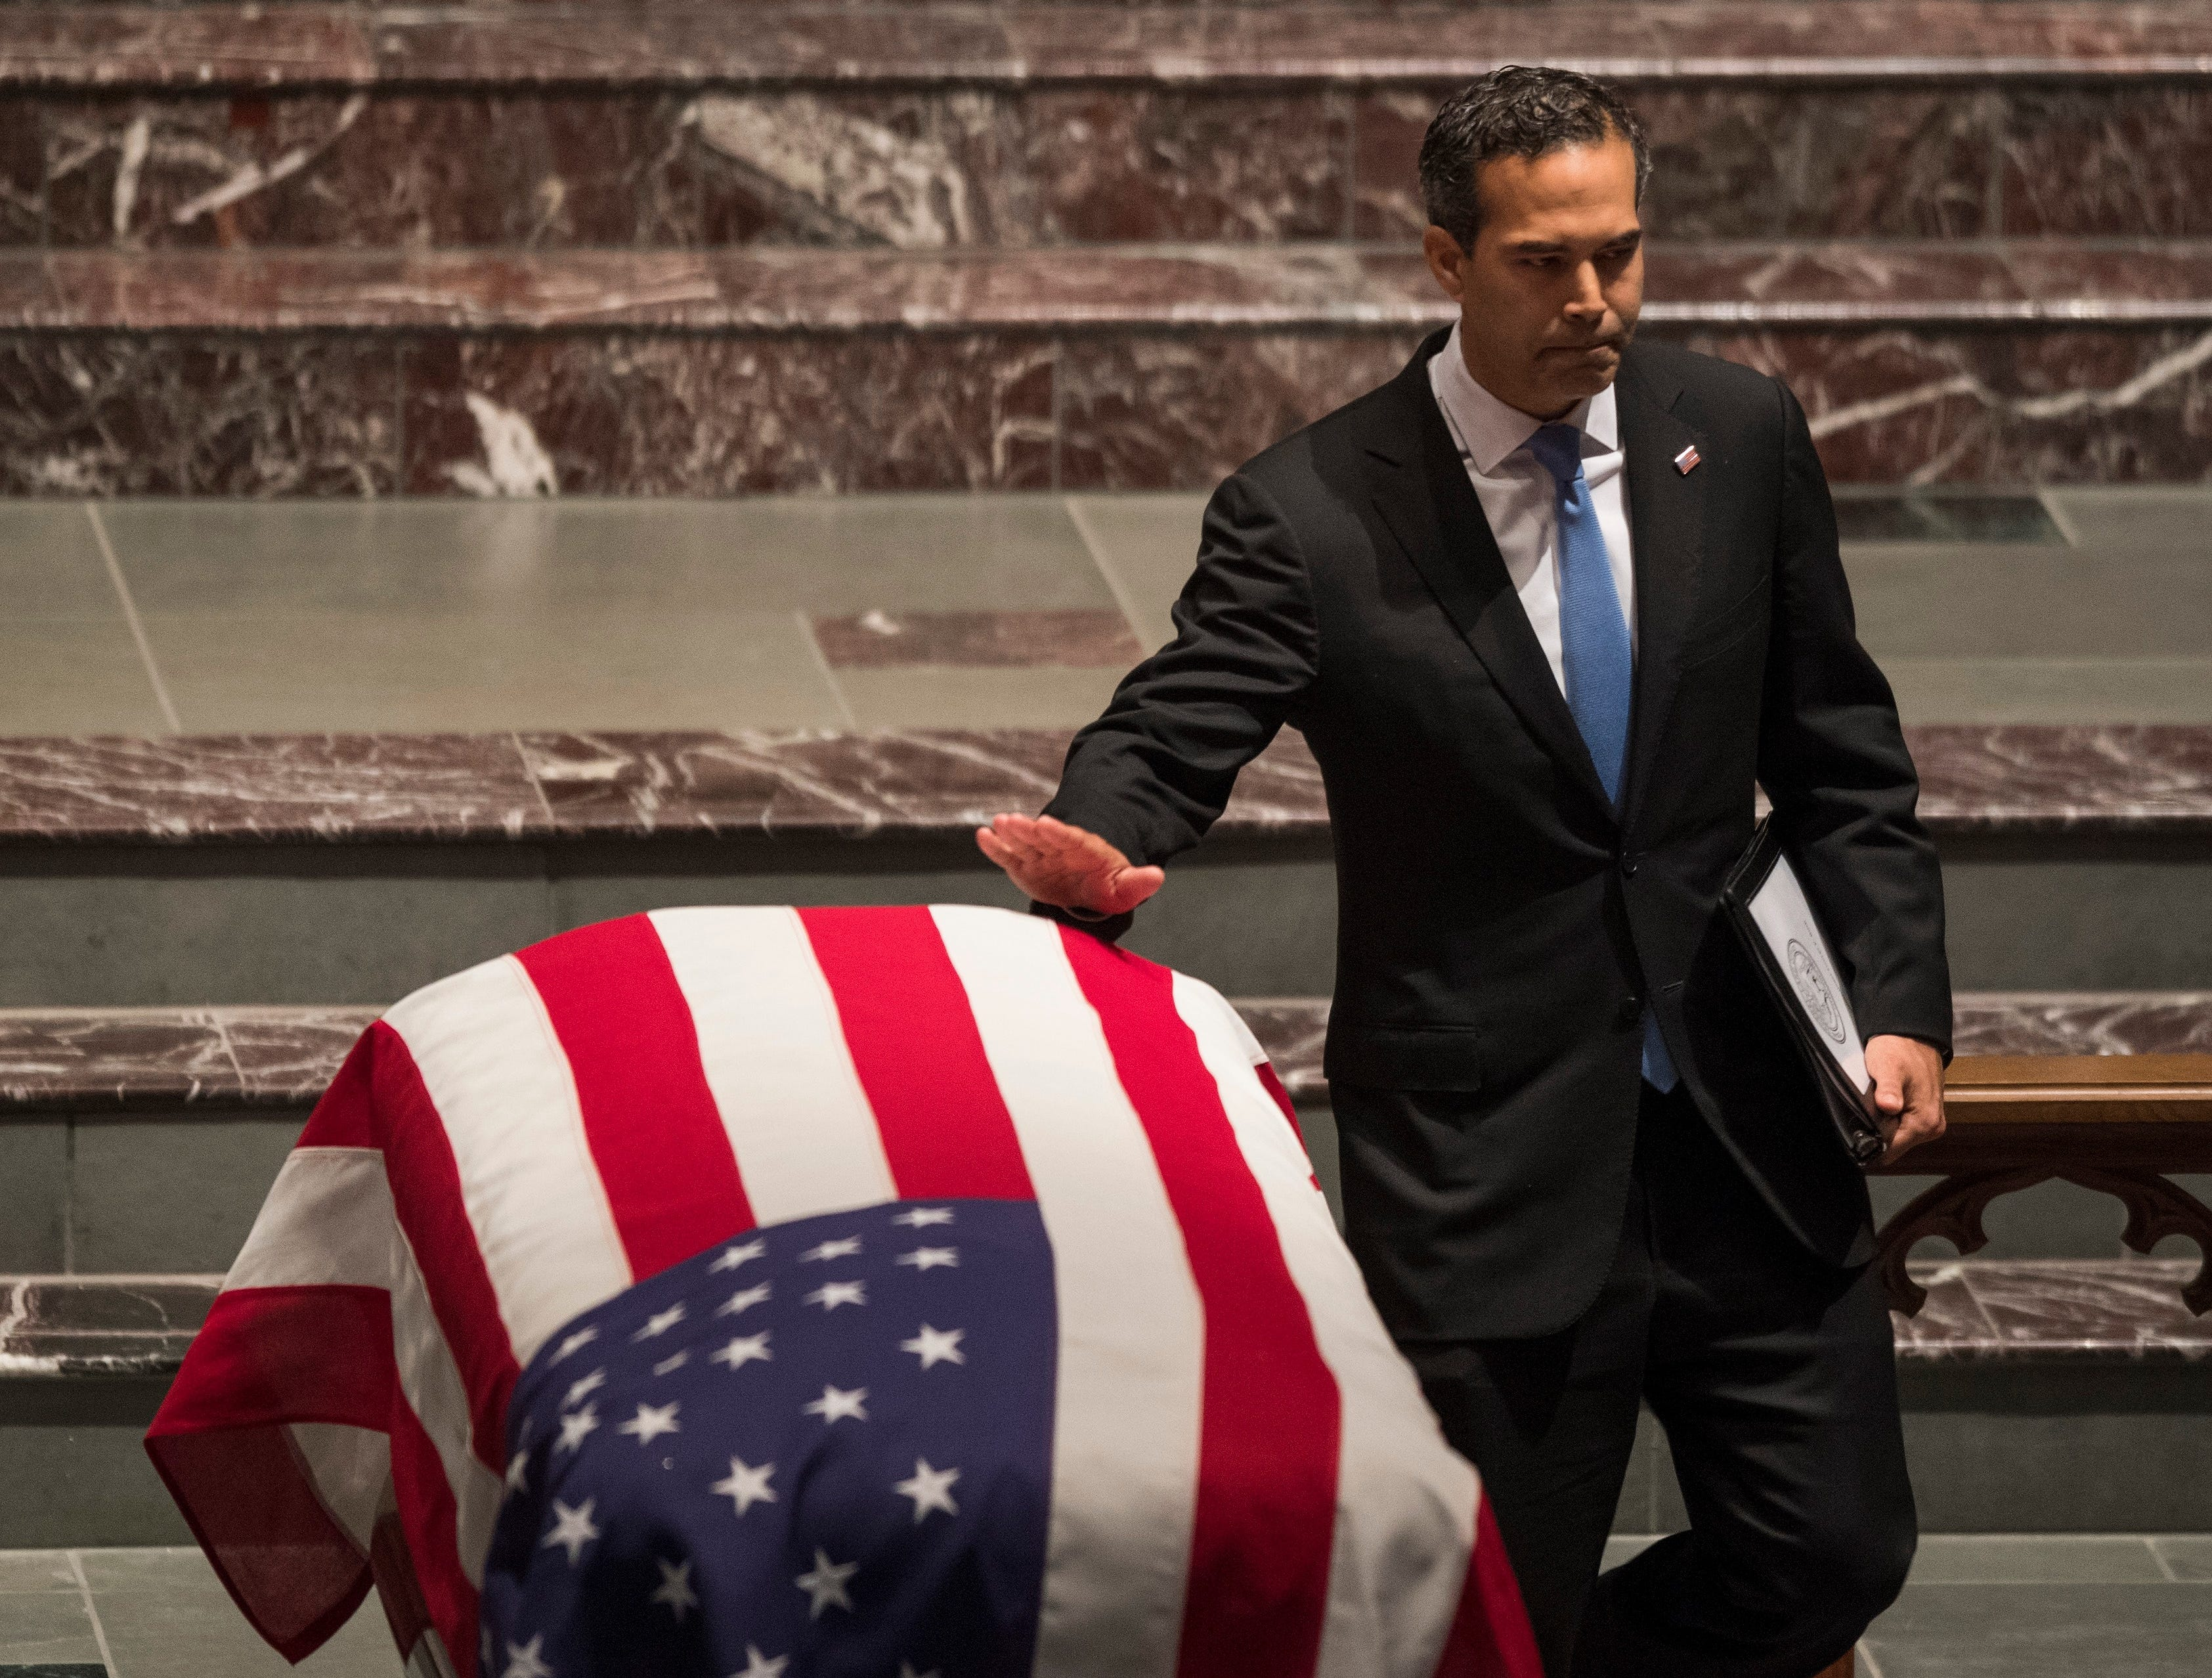 George P. Bush passes the flag-draped casket of former President George H.W. Bush after speaking at the funeral service at St. Martin's Episcopal Church in Houston, Thursday, Dec. 6, 2018.